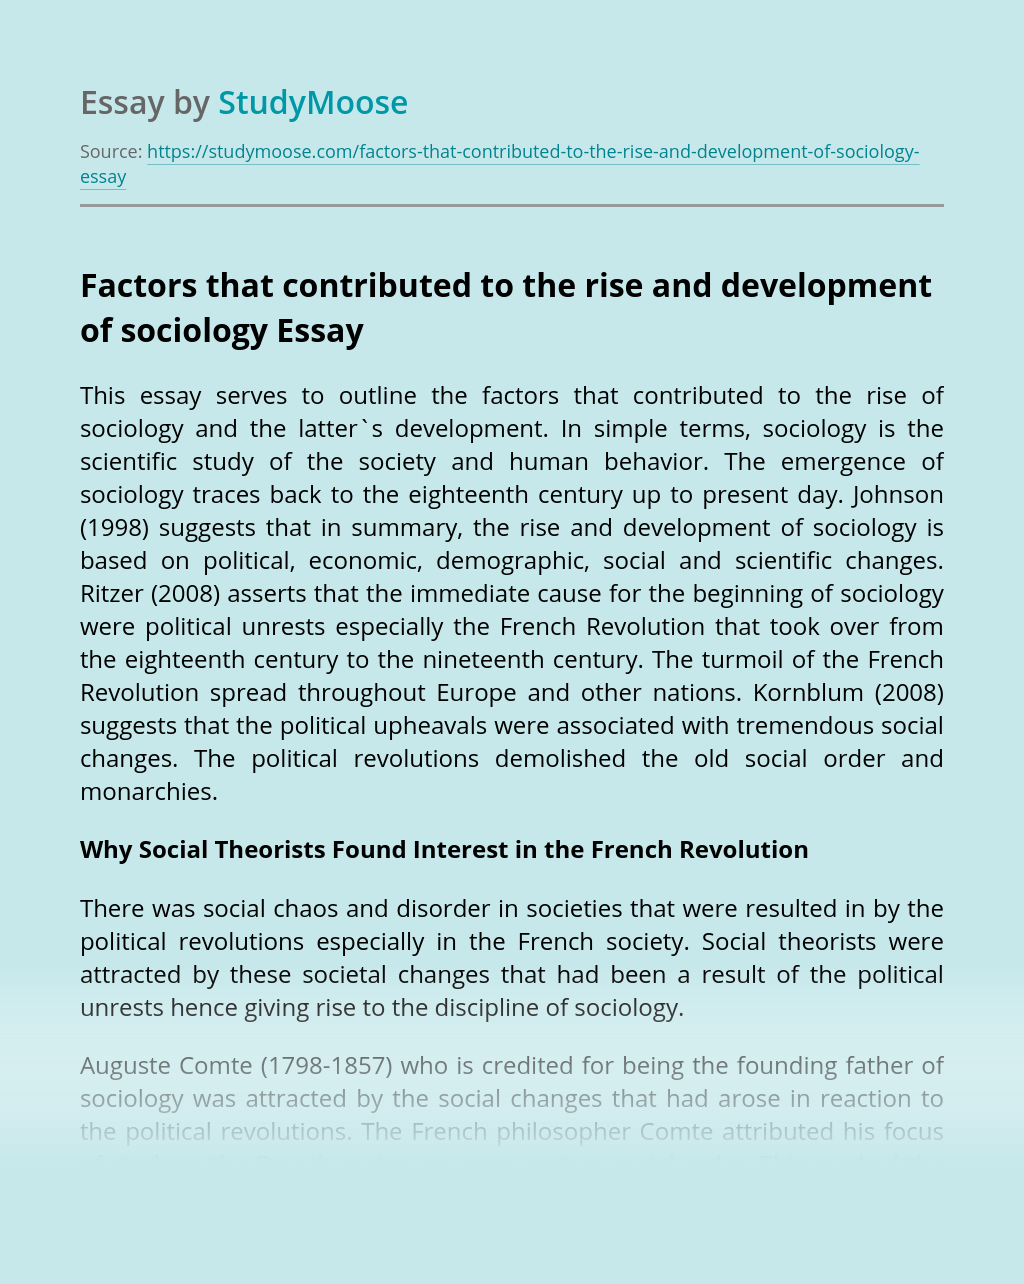 Factors that contributed to the rise and development of sociology